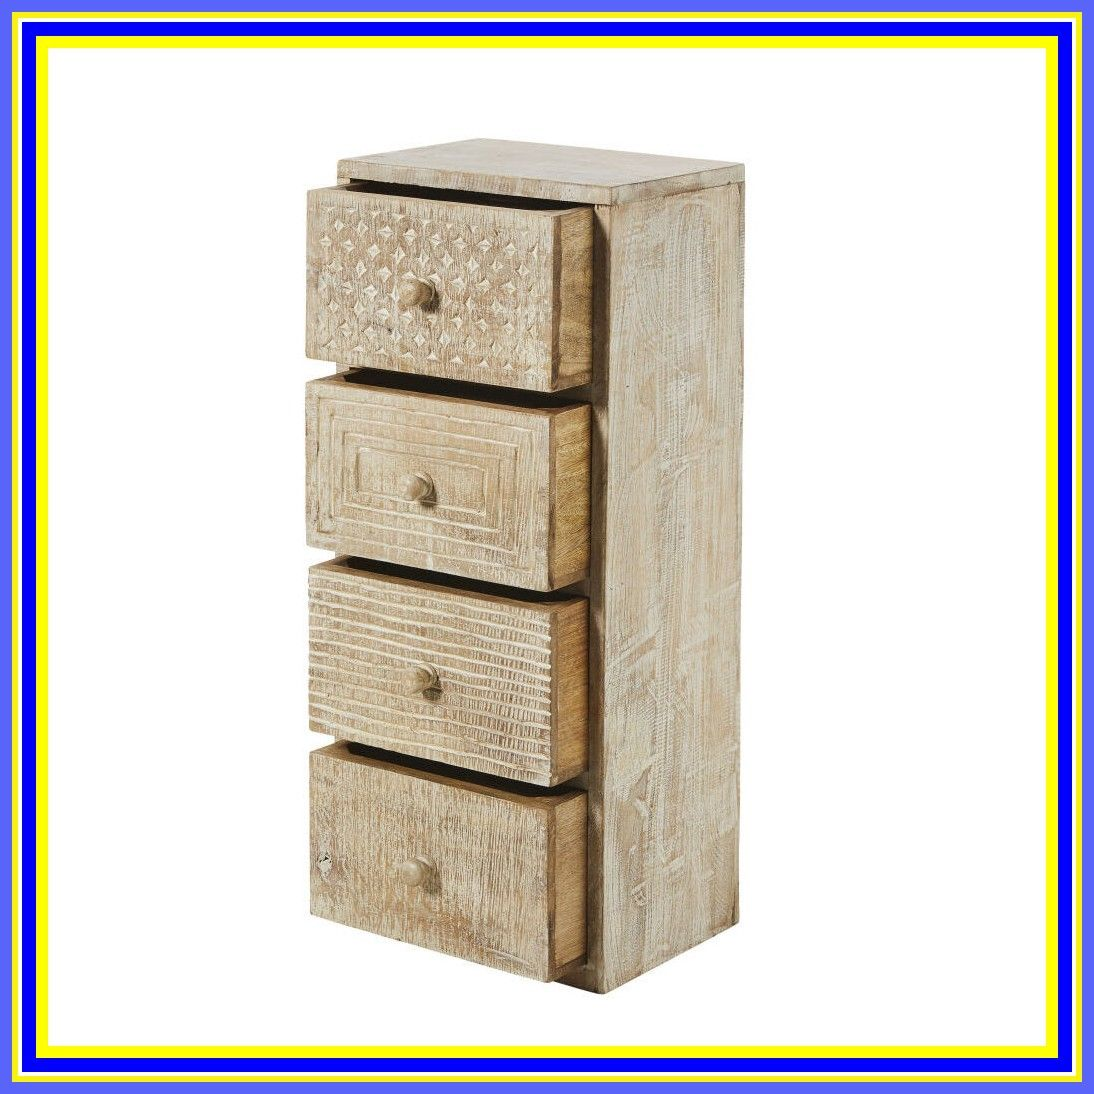 39 reference of small drawer unit wood in 2020 Small